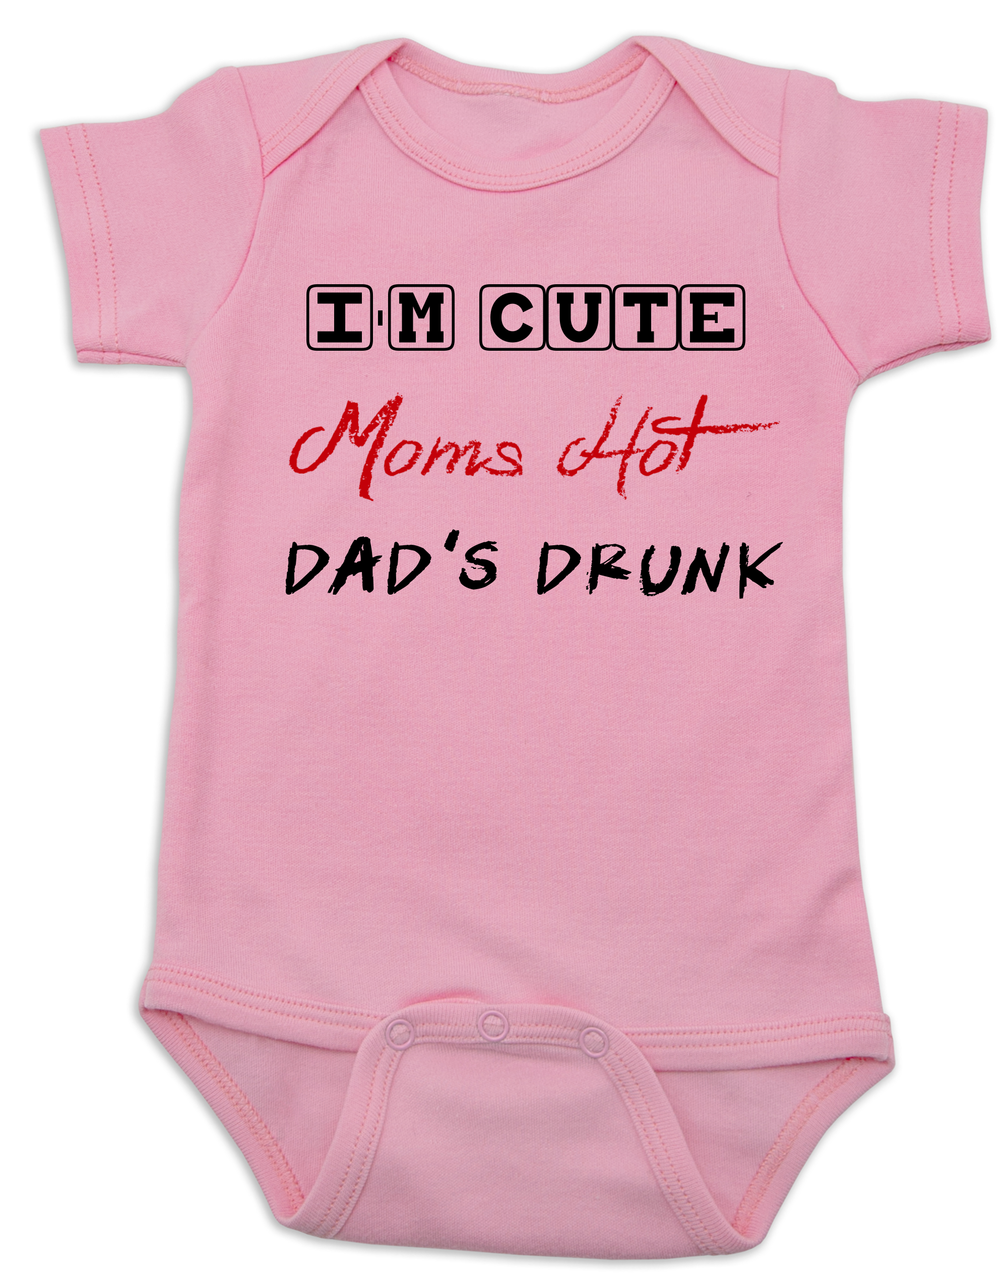 Trendy baby bodysuit available in multi colors! Dad/'s LUCKY I/'m CUTE Funny Baby Bodysuit for your new little one Mom/'s HOT